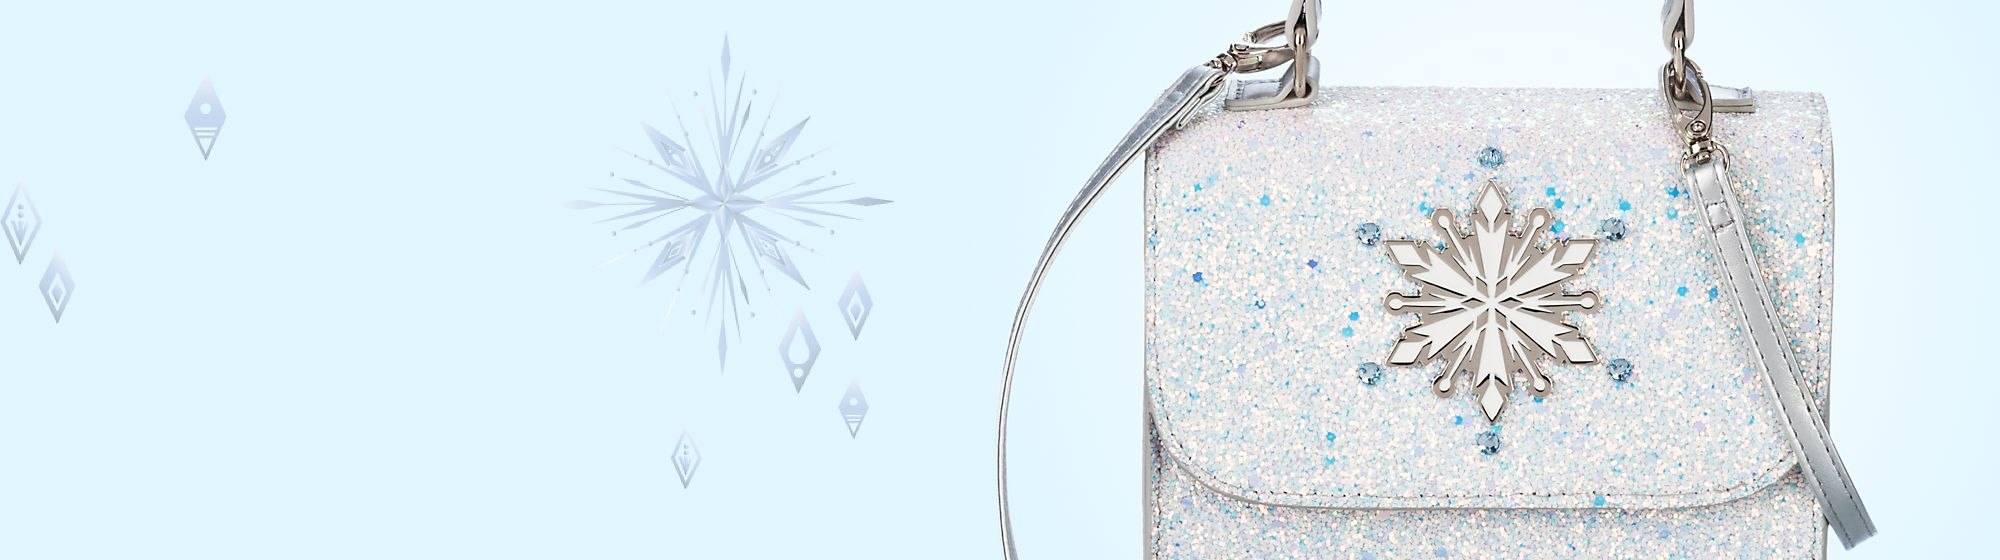 Frozen 2 Accessories Discover our collection of accessories including bags, hats, luggage and more